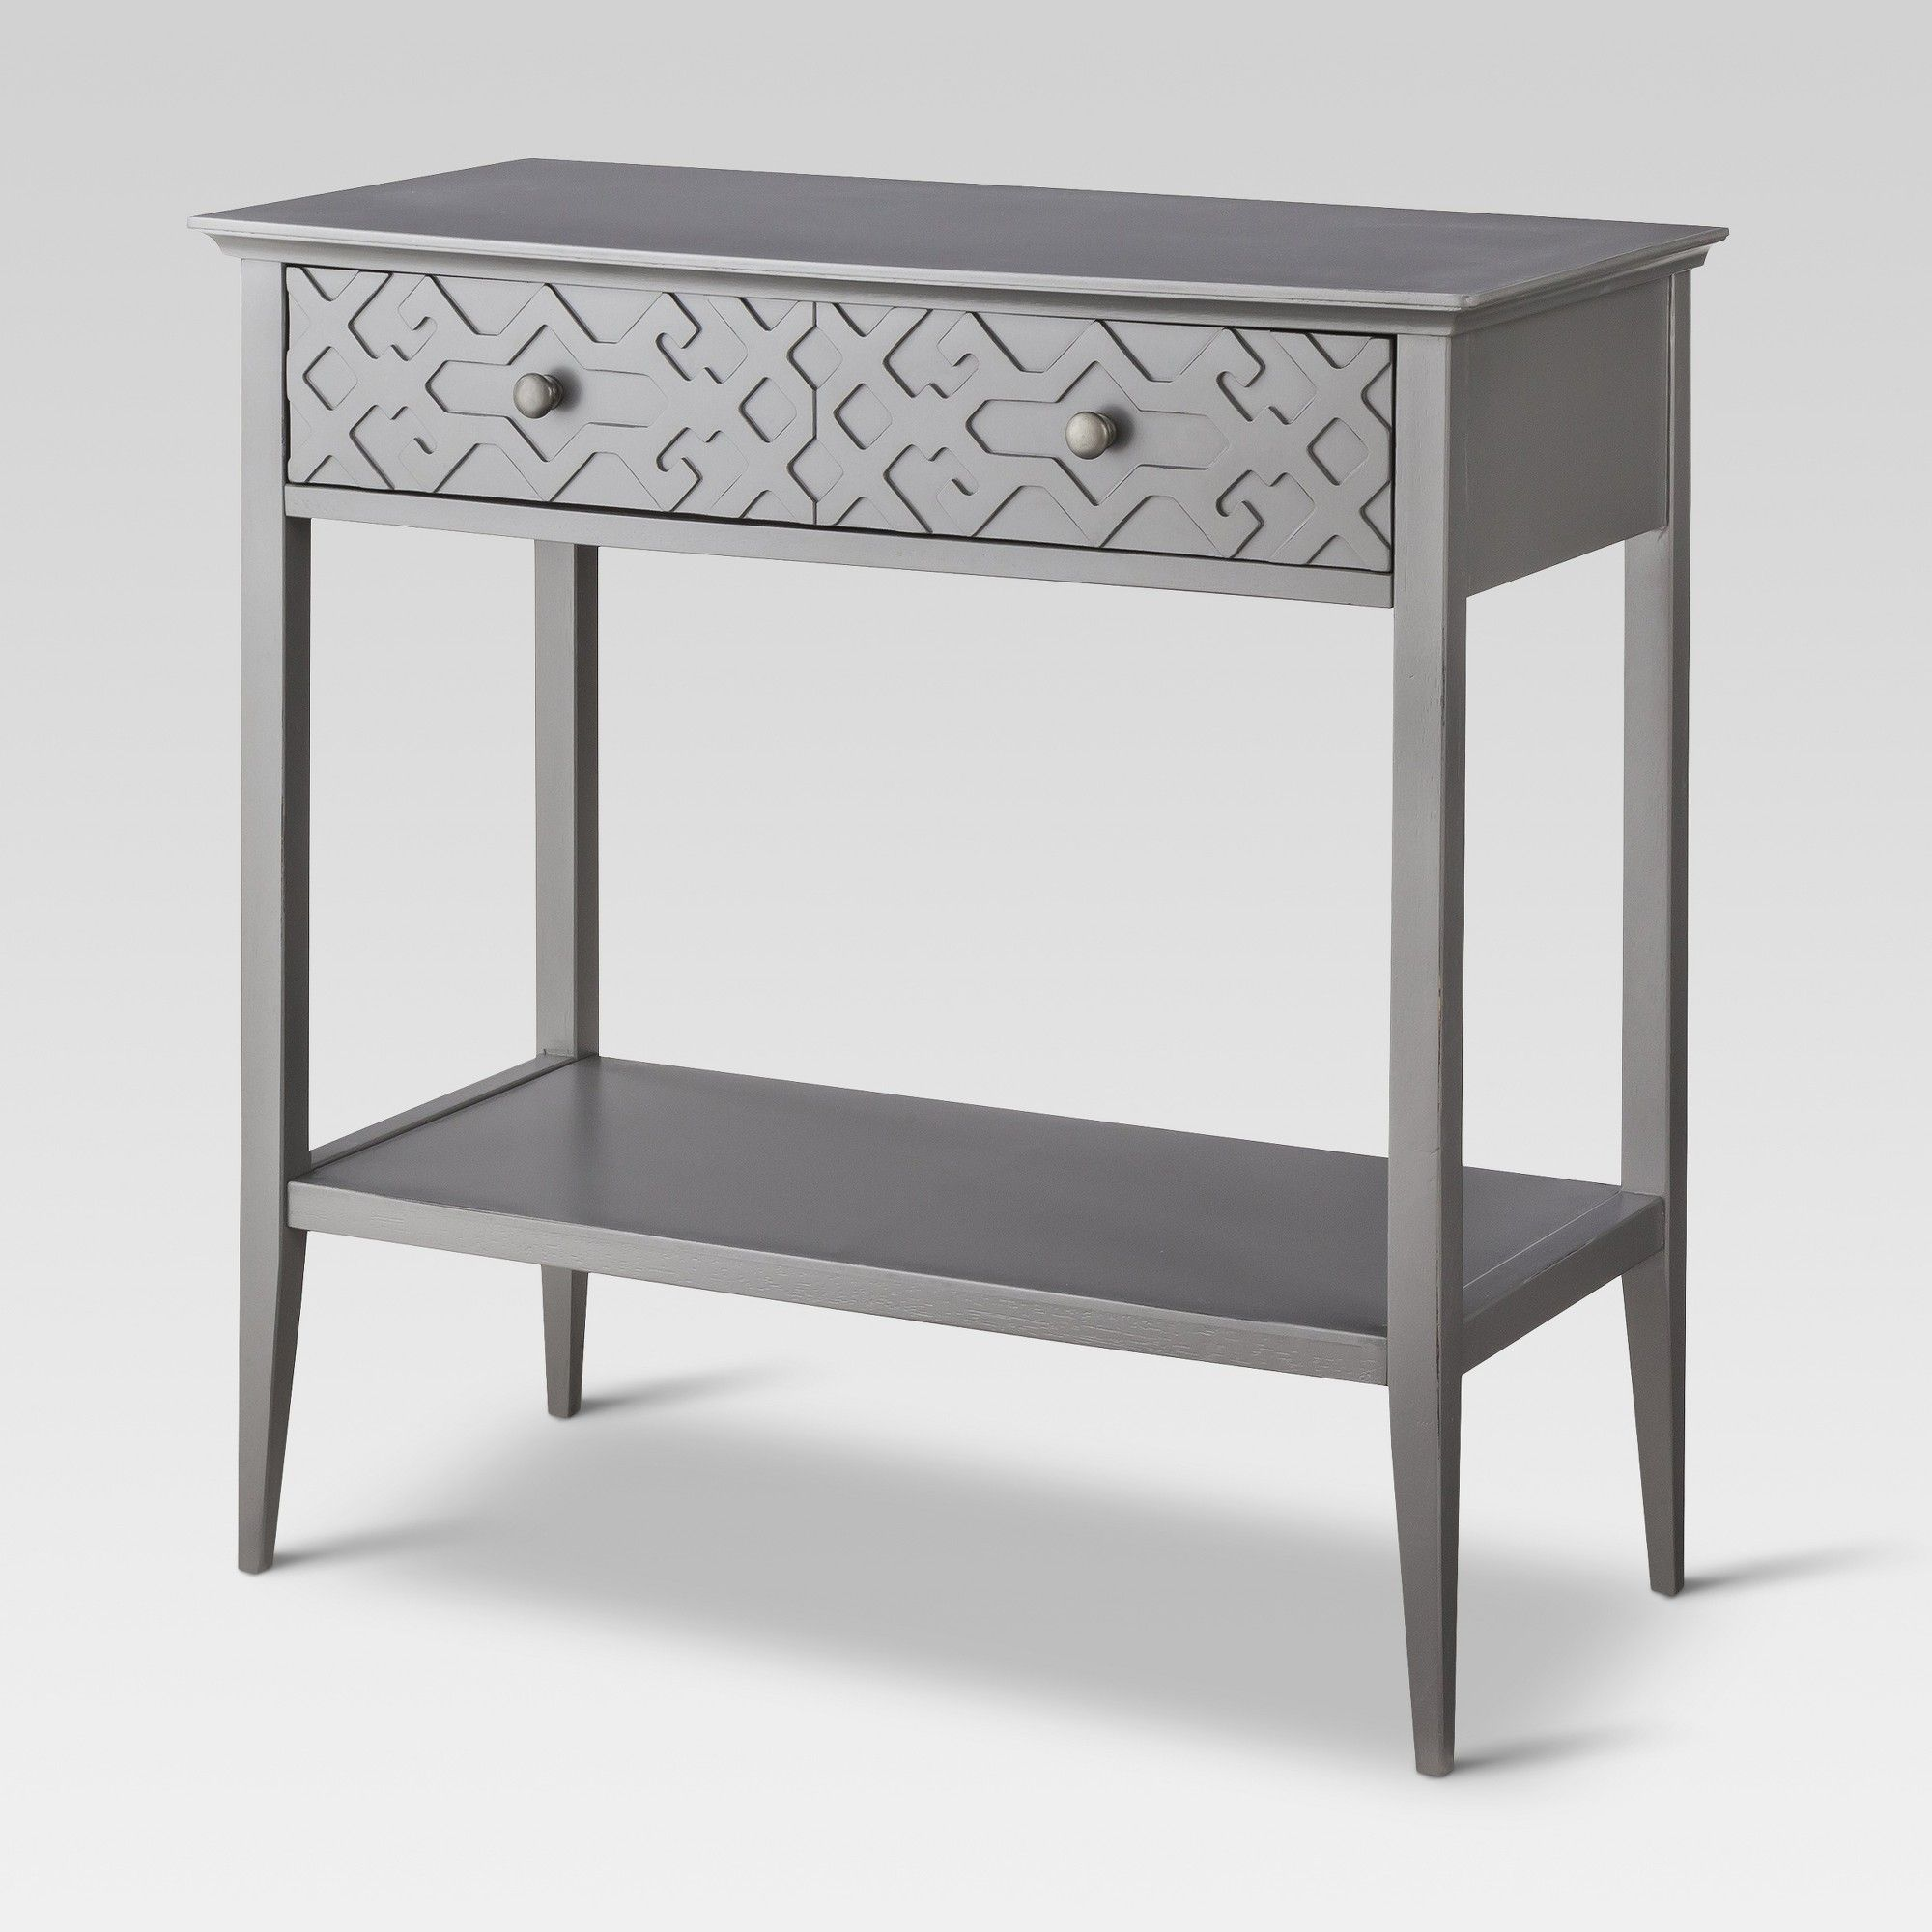 Fretwork Console Table Gray Threshold Elephant Console Table